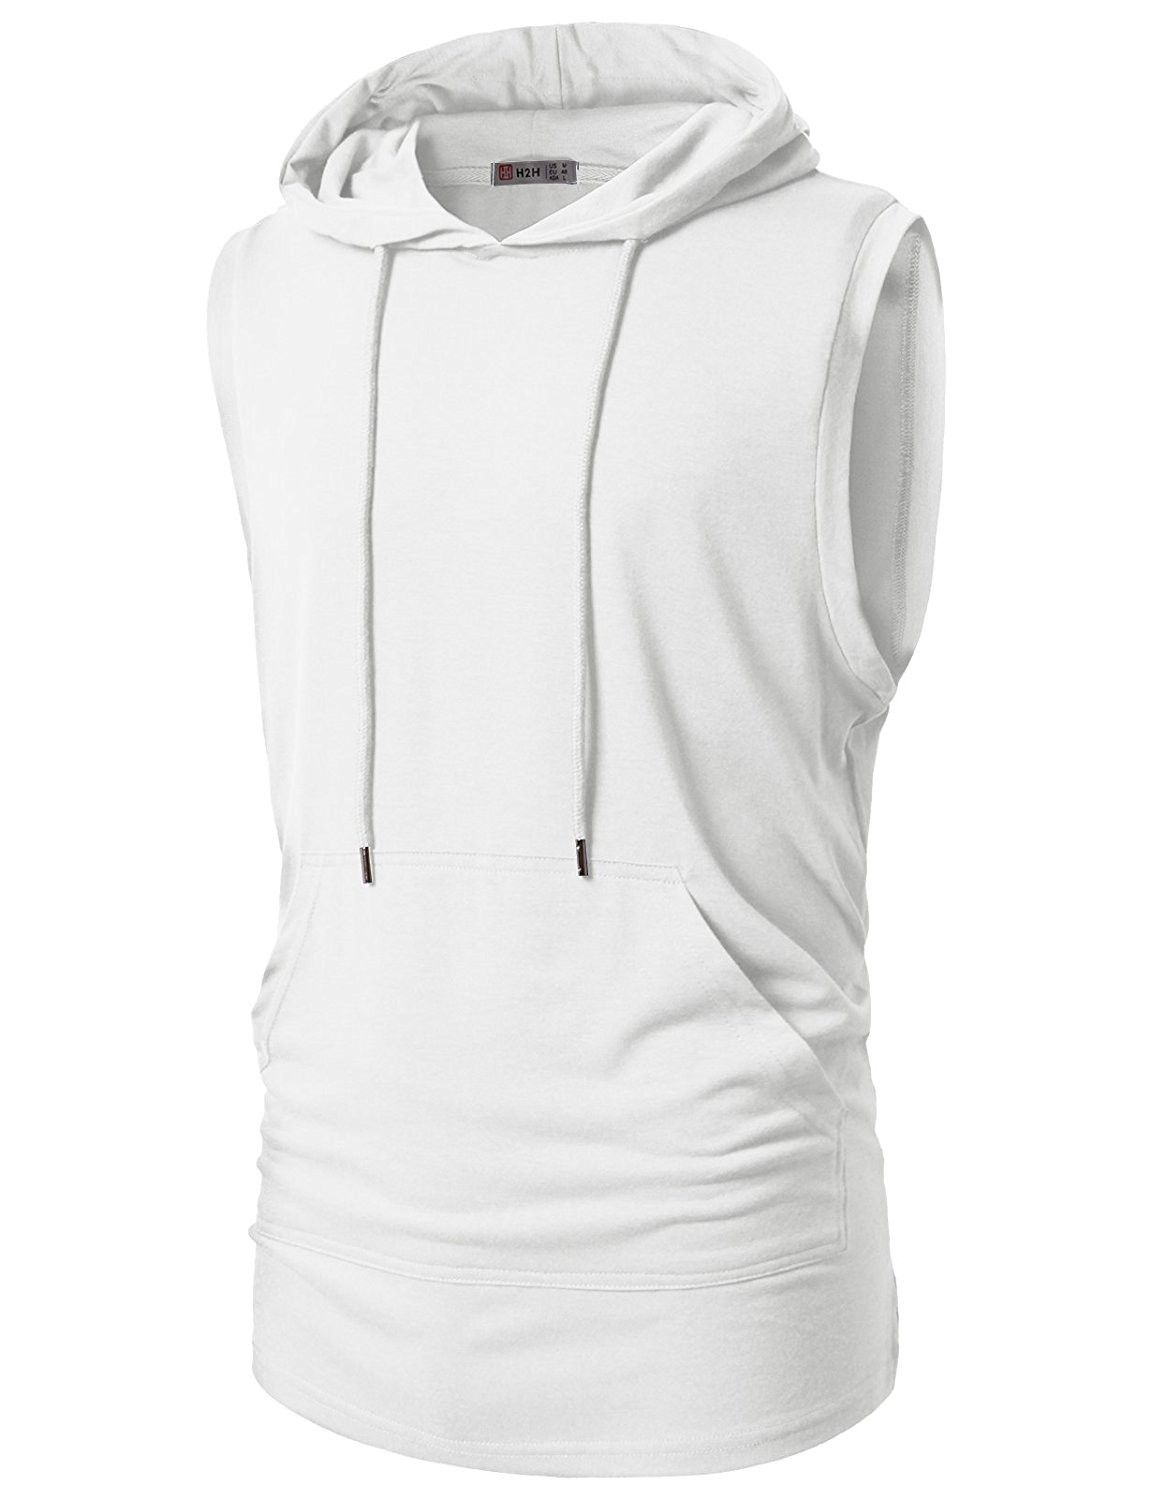 f39b99af Mens Casual Hipster Hip Hop Sleeveless Hoodie Longline Tank-Top With Pocket  - Cmttk028-white - CB182SHEWW5,Men's Clothing, Shirts, Tank Tops #men # fashion ...